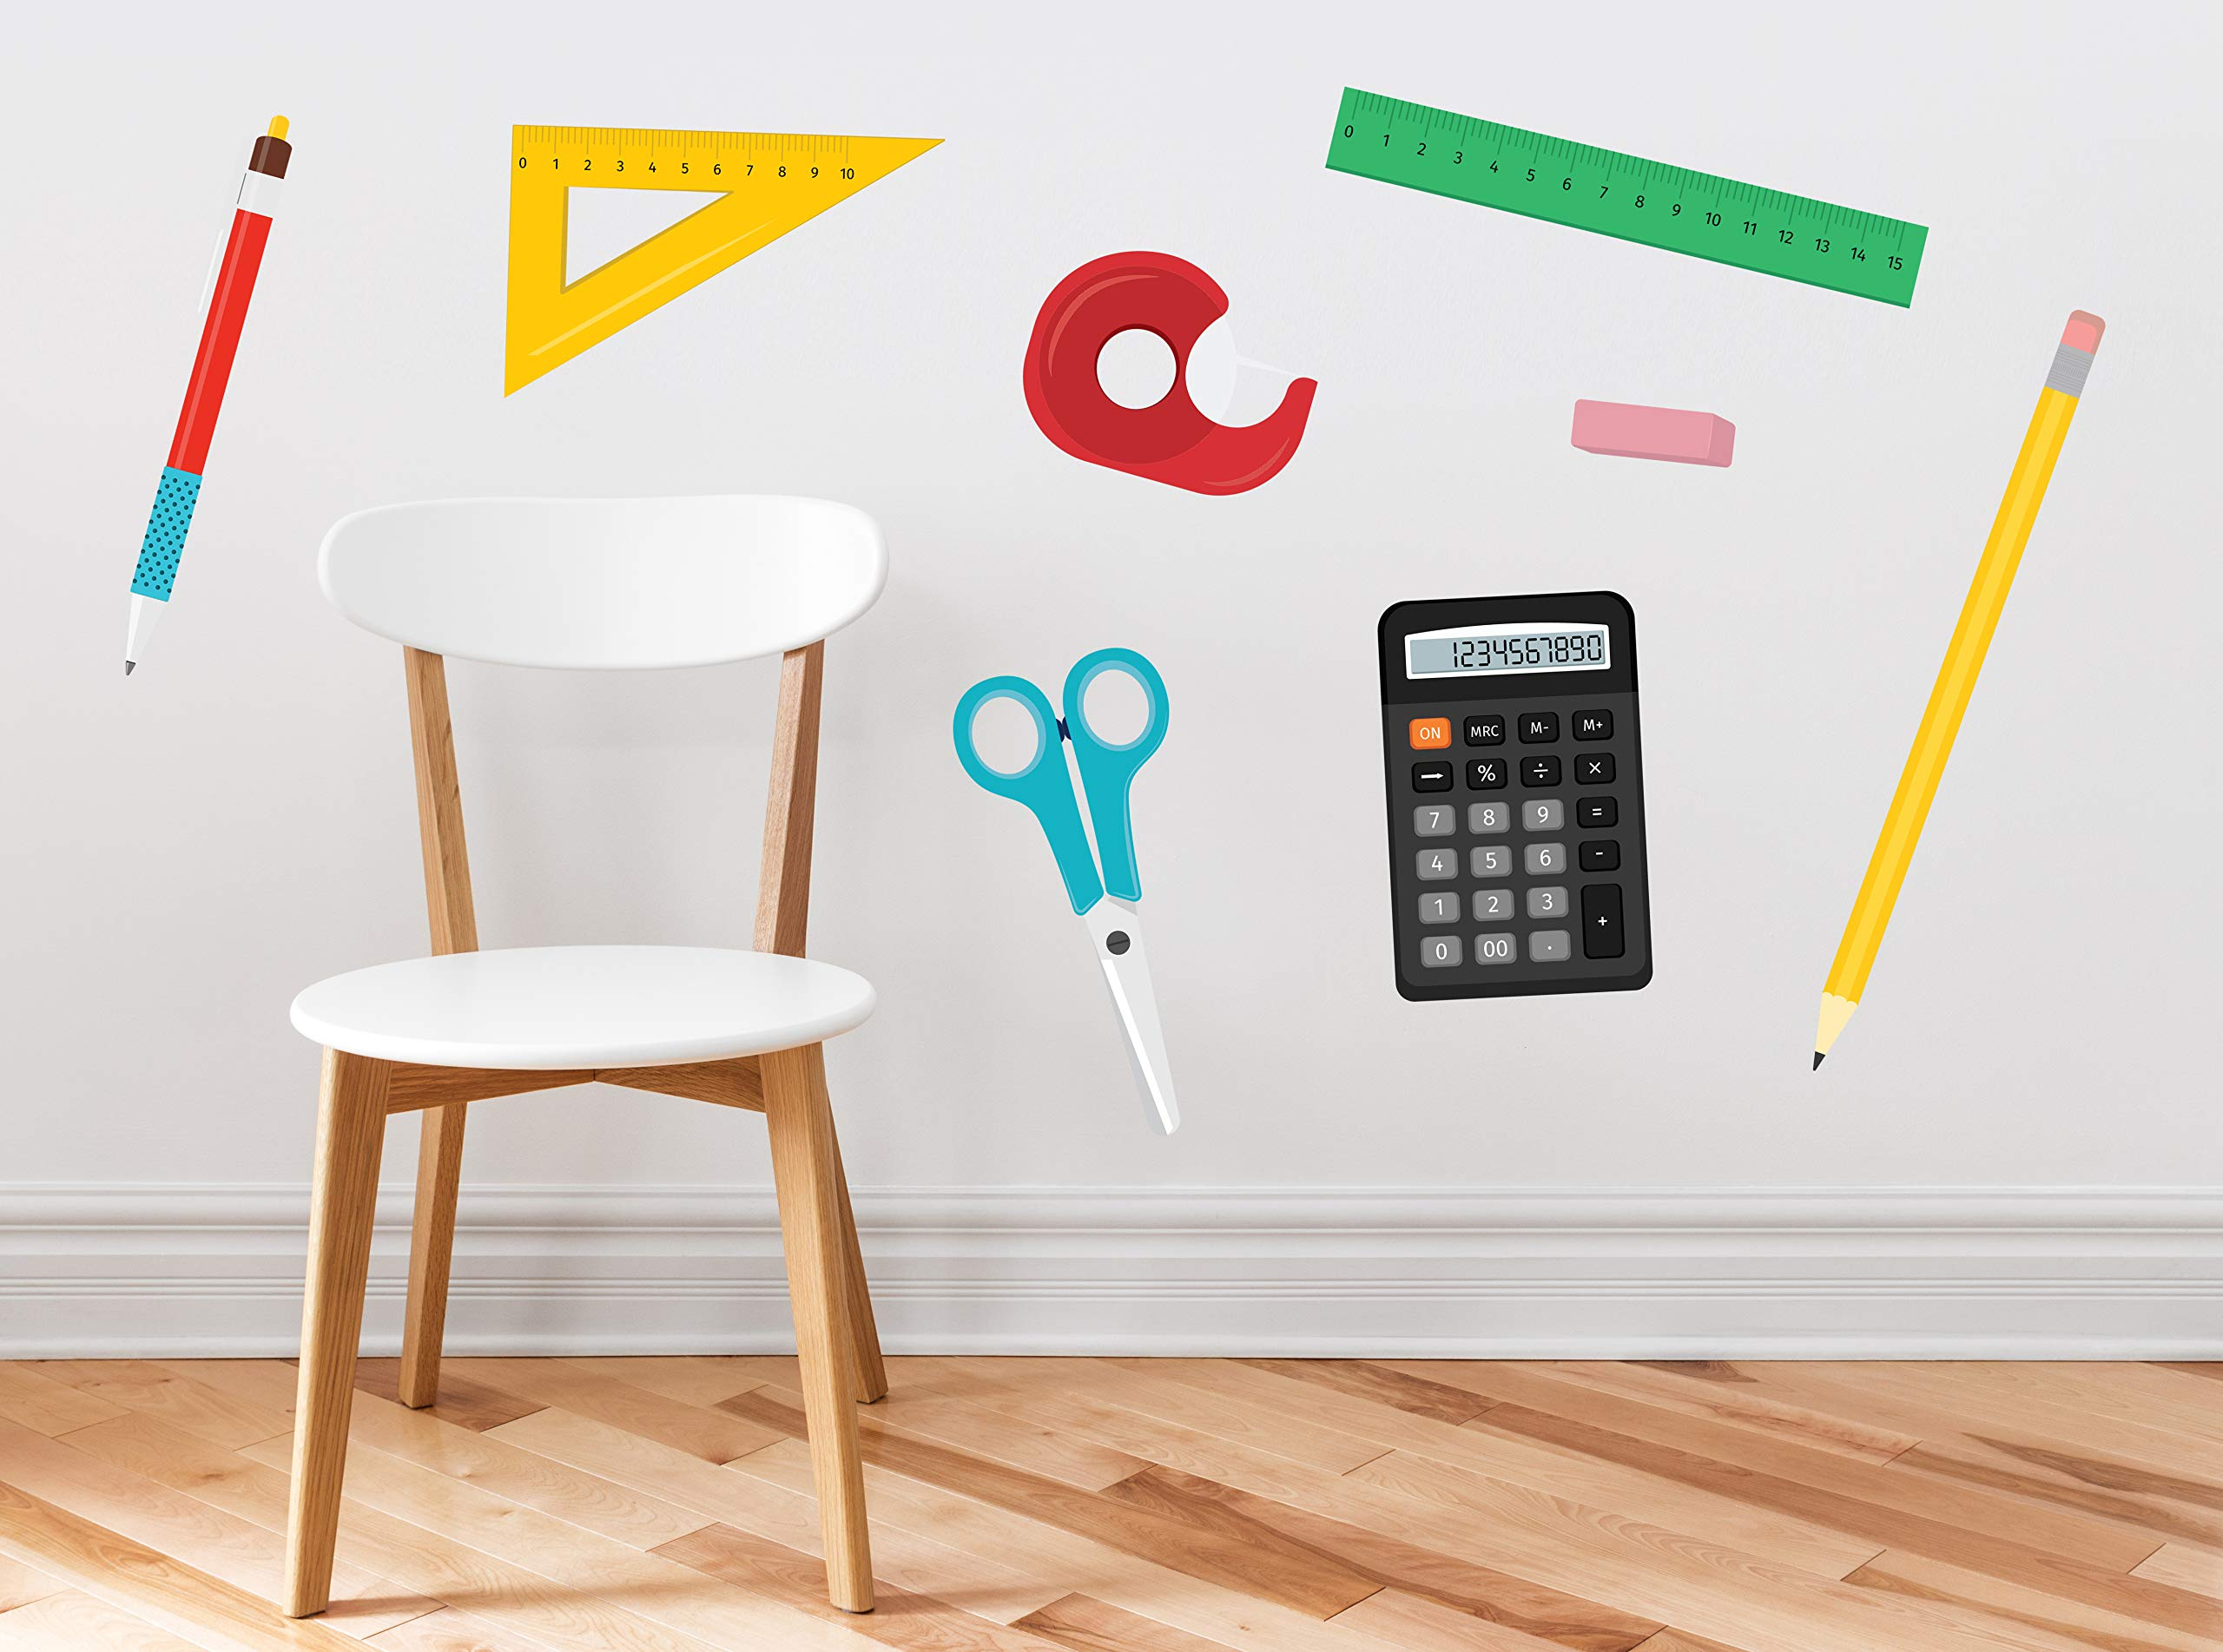 School Supplies Fabric Wall Decals - Set of 8 with Ruler, Scissors, Calculator, Pencil, Pen, Eraser, Triangle, Tape Dispenser in Different Colors - Removable, Reusable, Respositionable